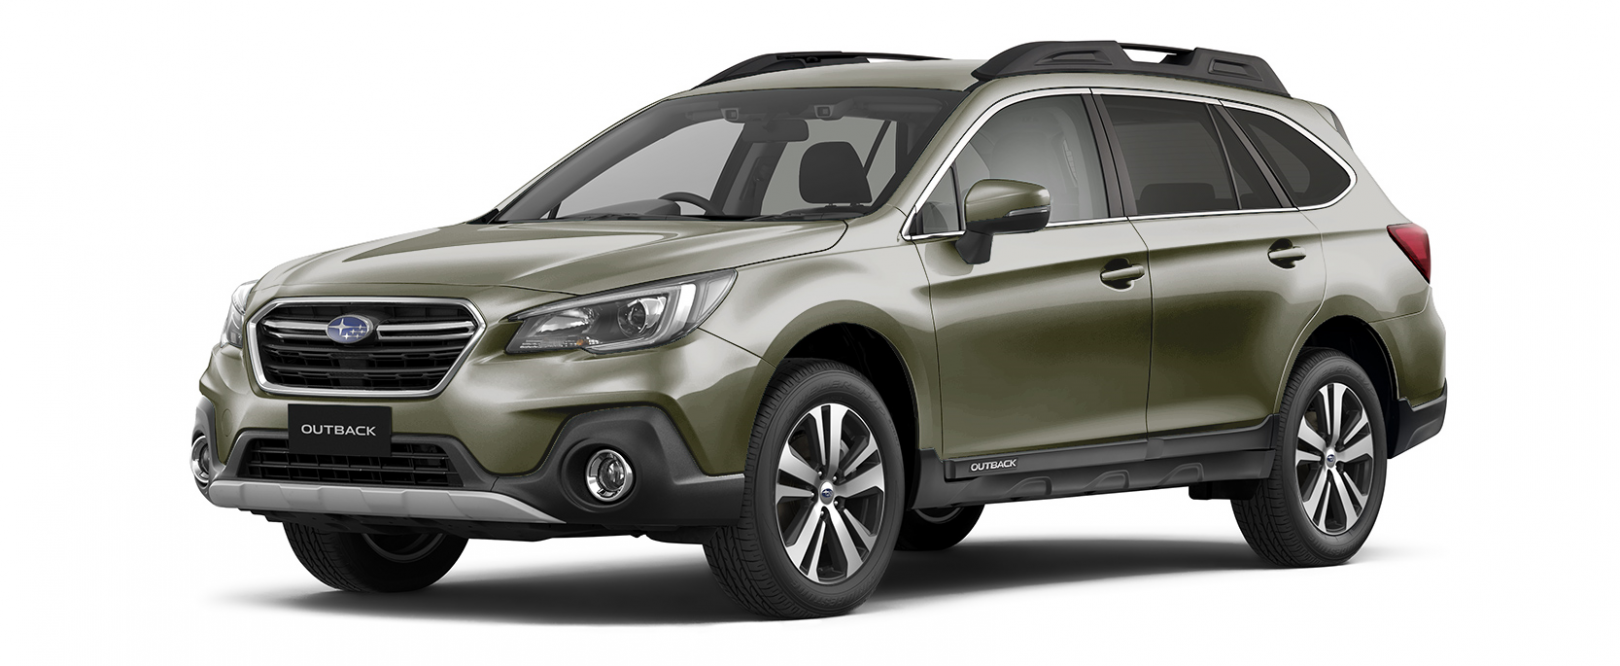 Outback 2.5i Sport Wilderness Green